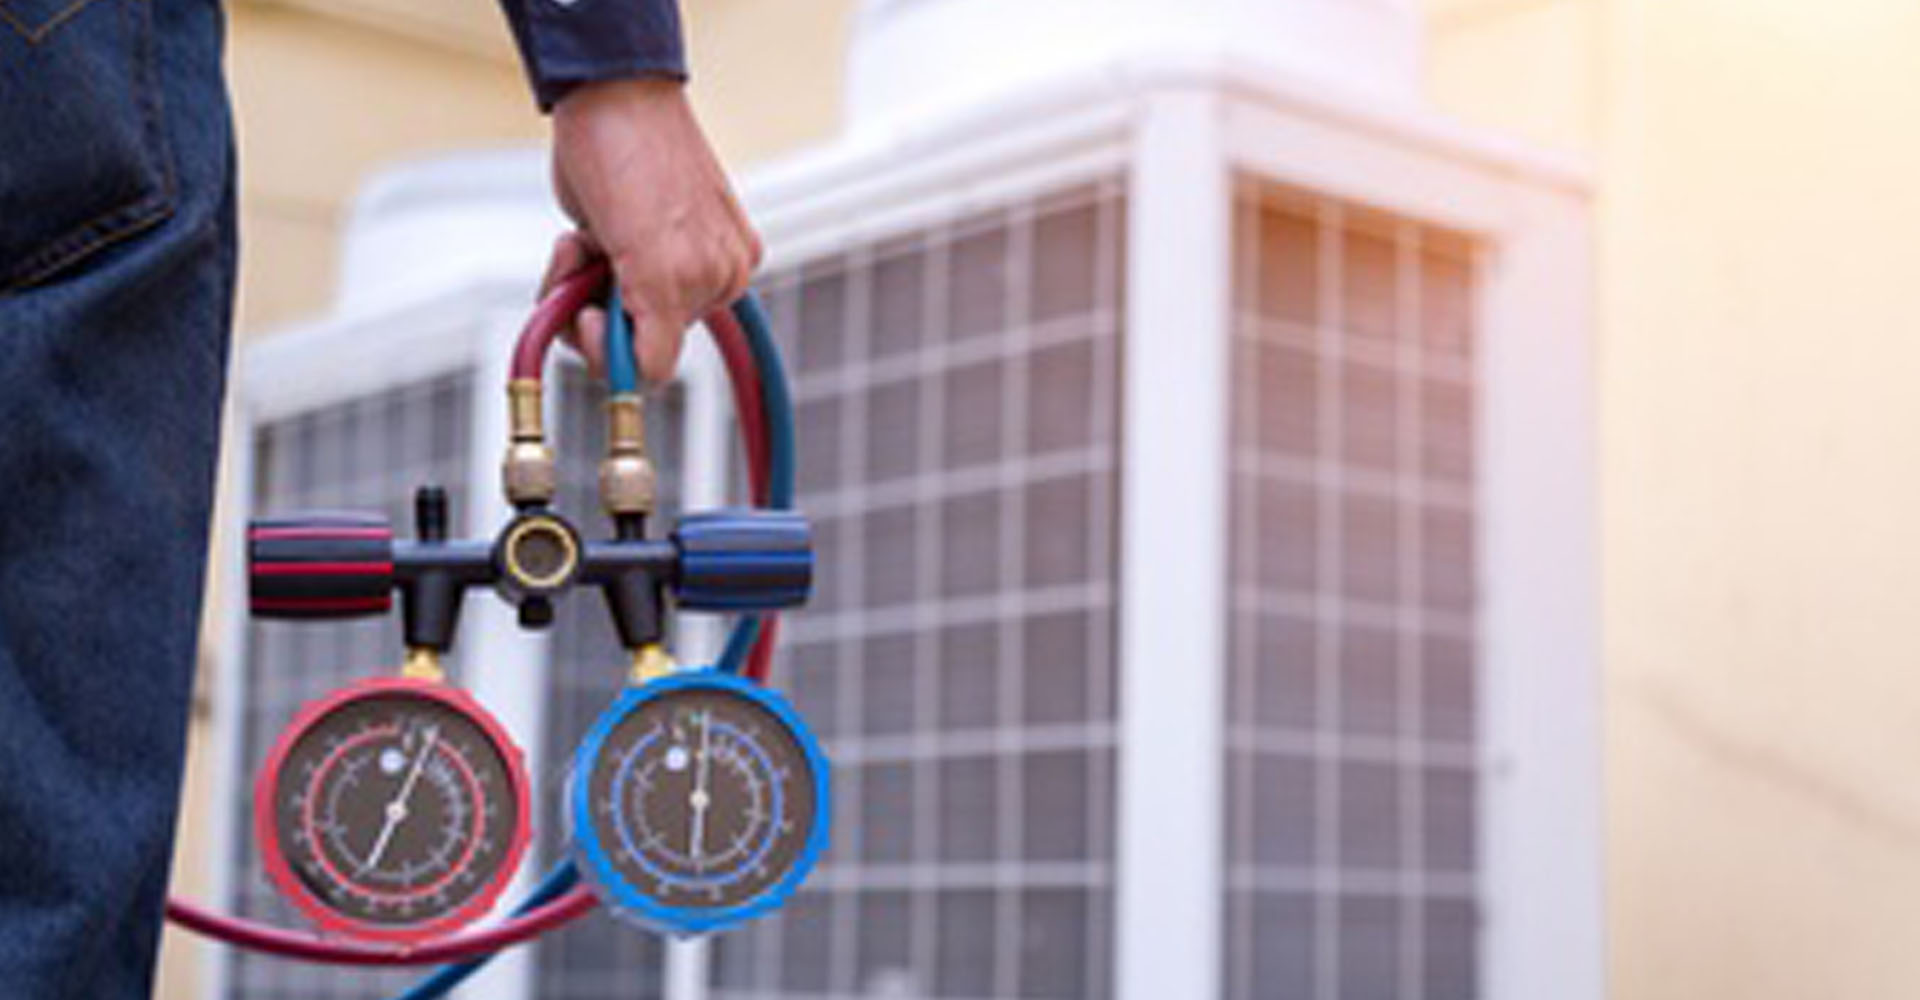 HVAC contractor in Livermore, California Best HVAC contractor in Livermore, California Top HVAC contractor Air conditioning contractor Livermore Heating contractor Livermore Residential HVAC contractor Commercial HVAC contractor